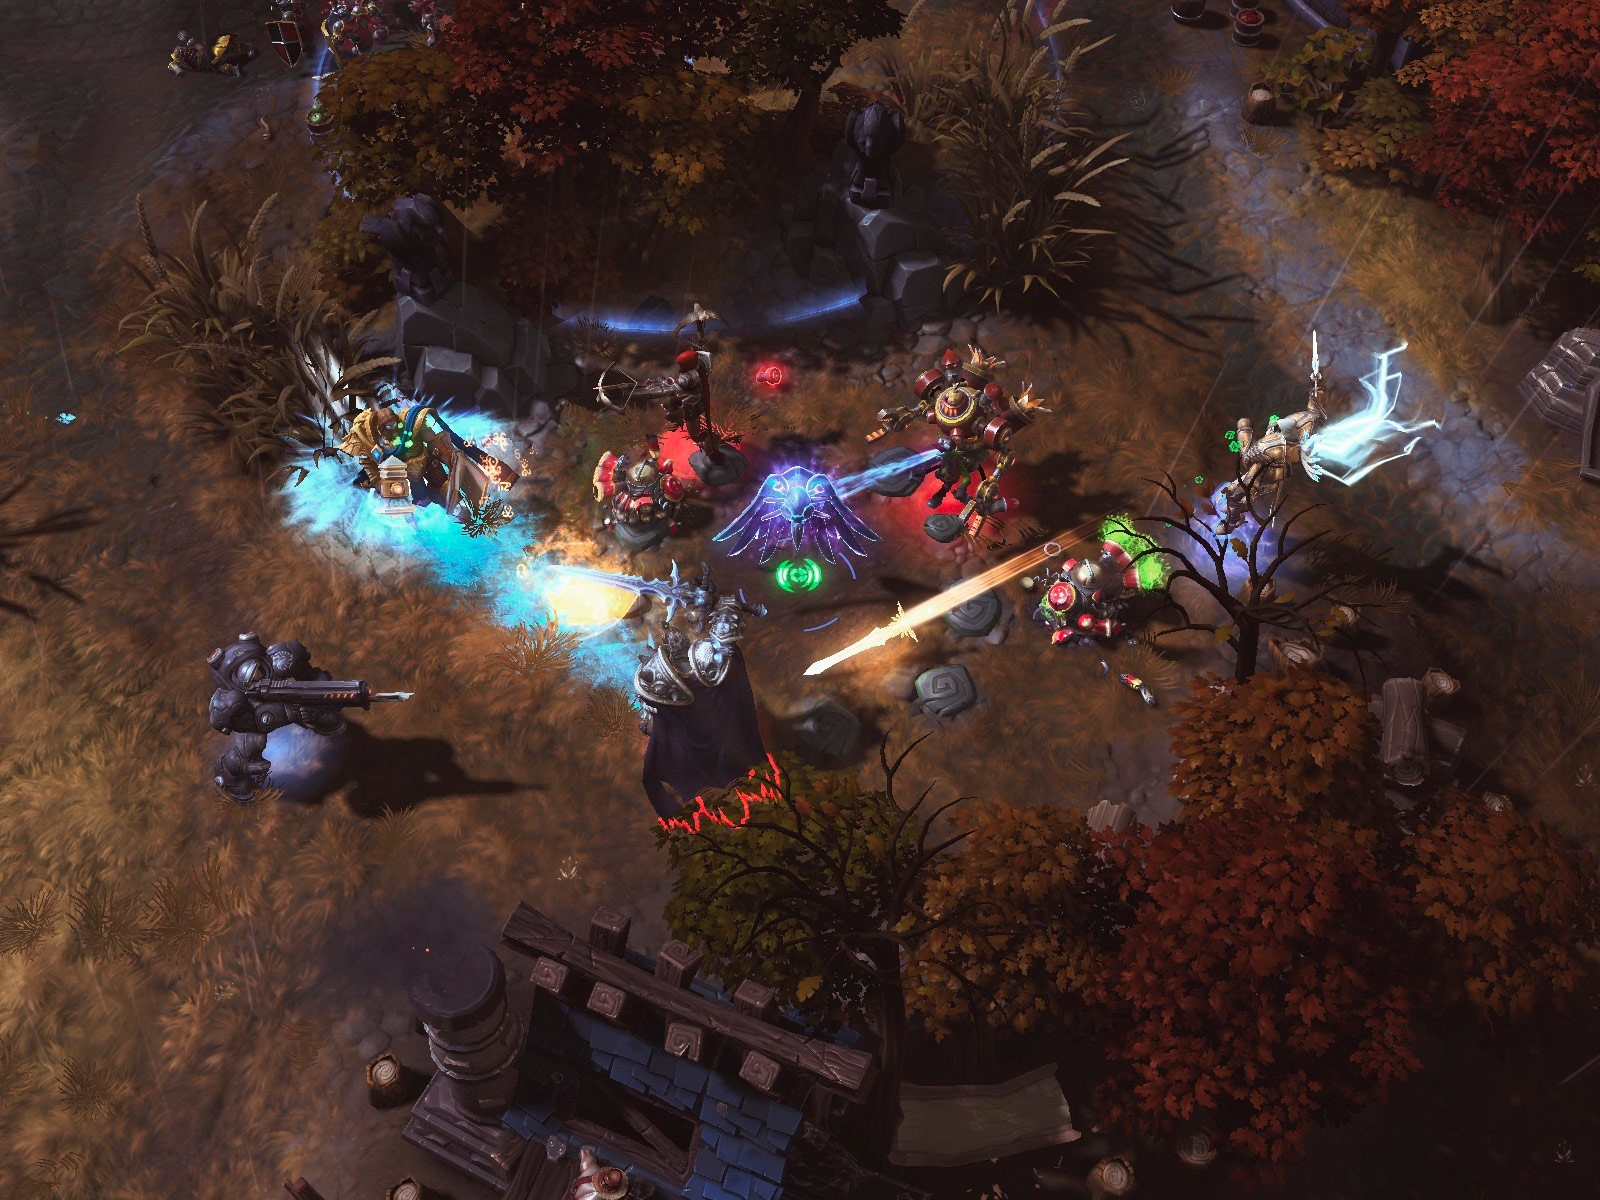 Heroes Of The Storm: Universes Collide In First Gameplay Trailer And Screenshots #29614